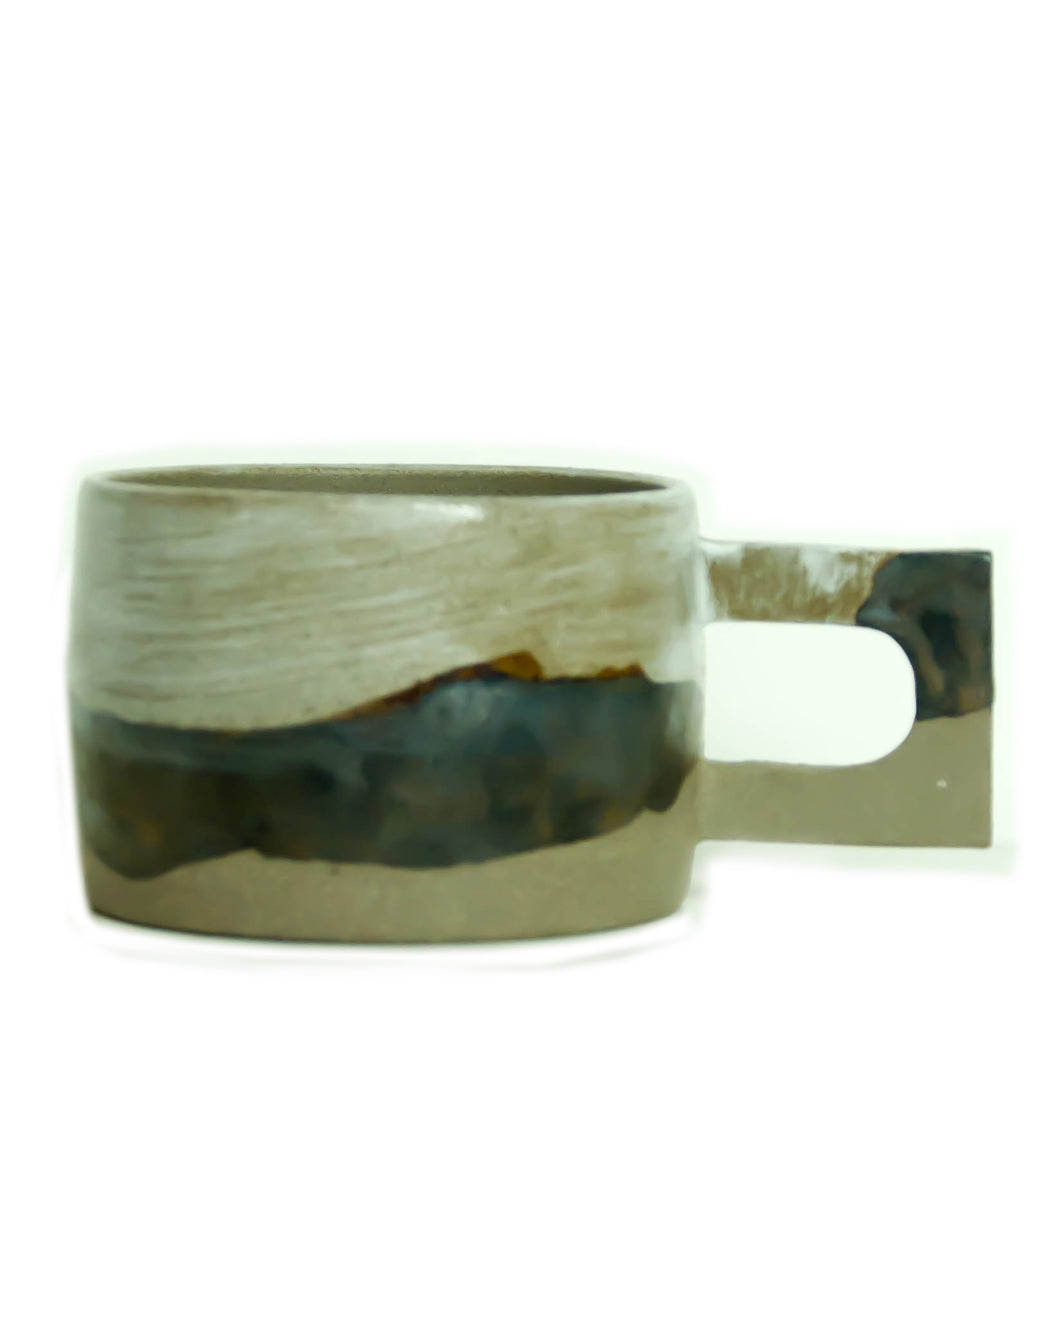 Kibi Ceramic Mug | Mountain | Square Handle - Elliott St.